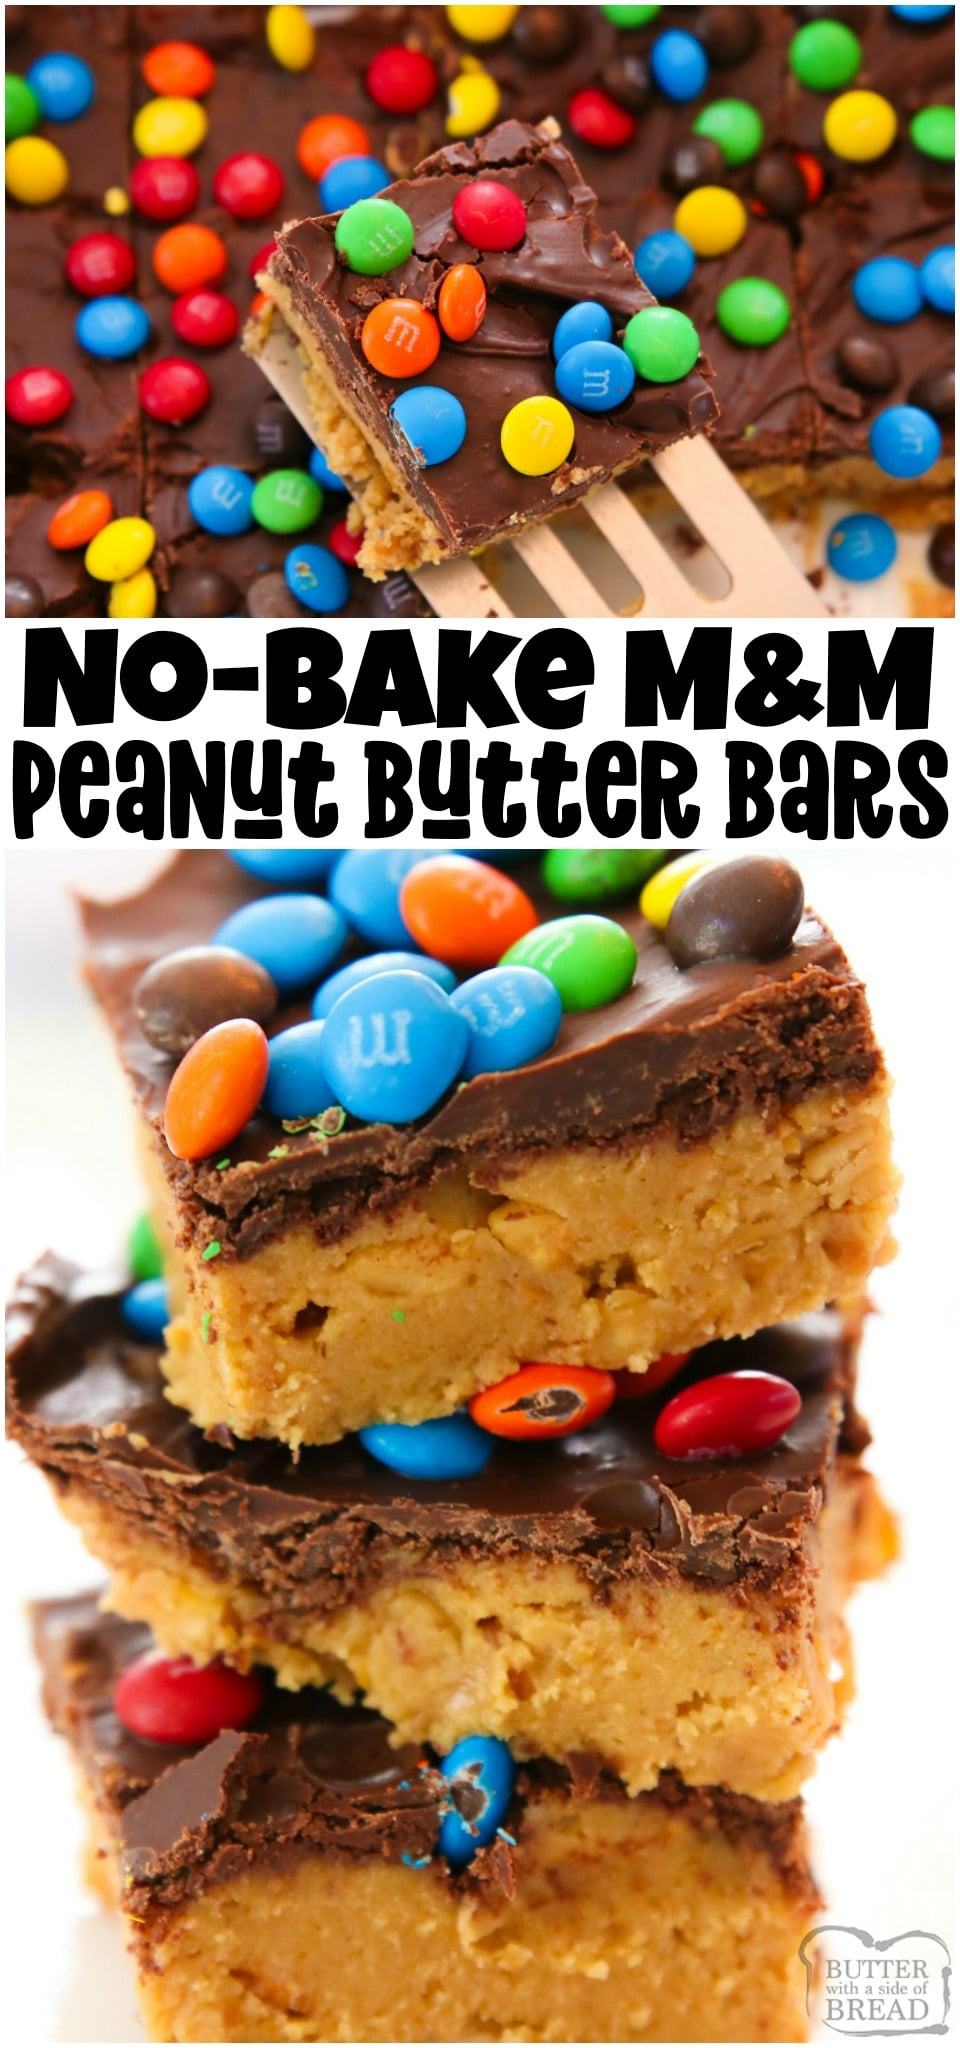 No Bake M&M Peanut Butter Bars are the perfect no-bake dessert to make this summer! Graham cracker crumbs, peanut butter and both chocolate chips and M&M's combine in this sweet and salty treat. #nobake #peanutbutter #chocolate #dessert #recipe from BUTTER WITH A SIDE OF BREAD